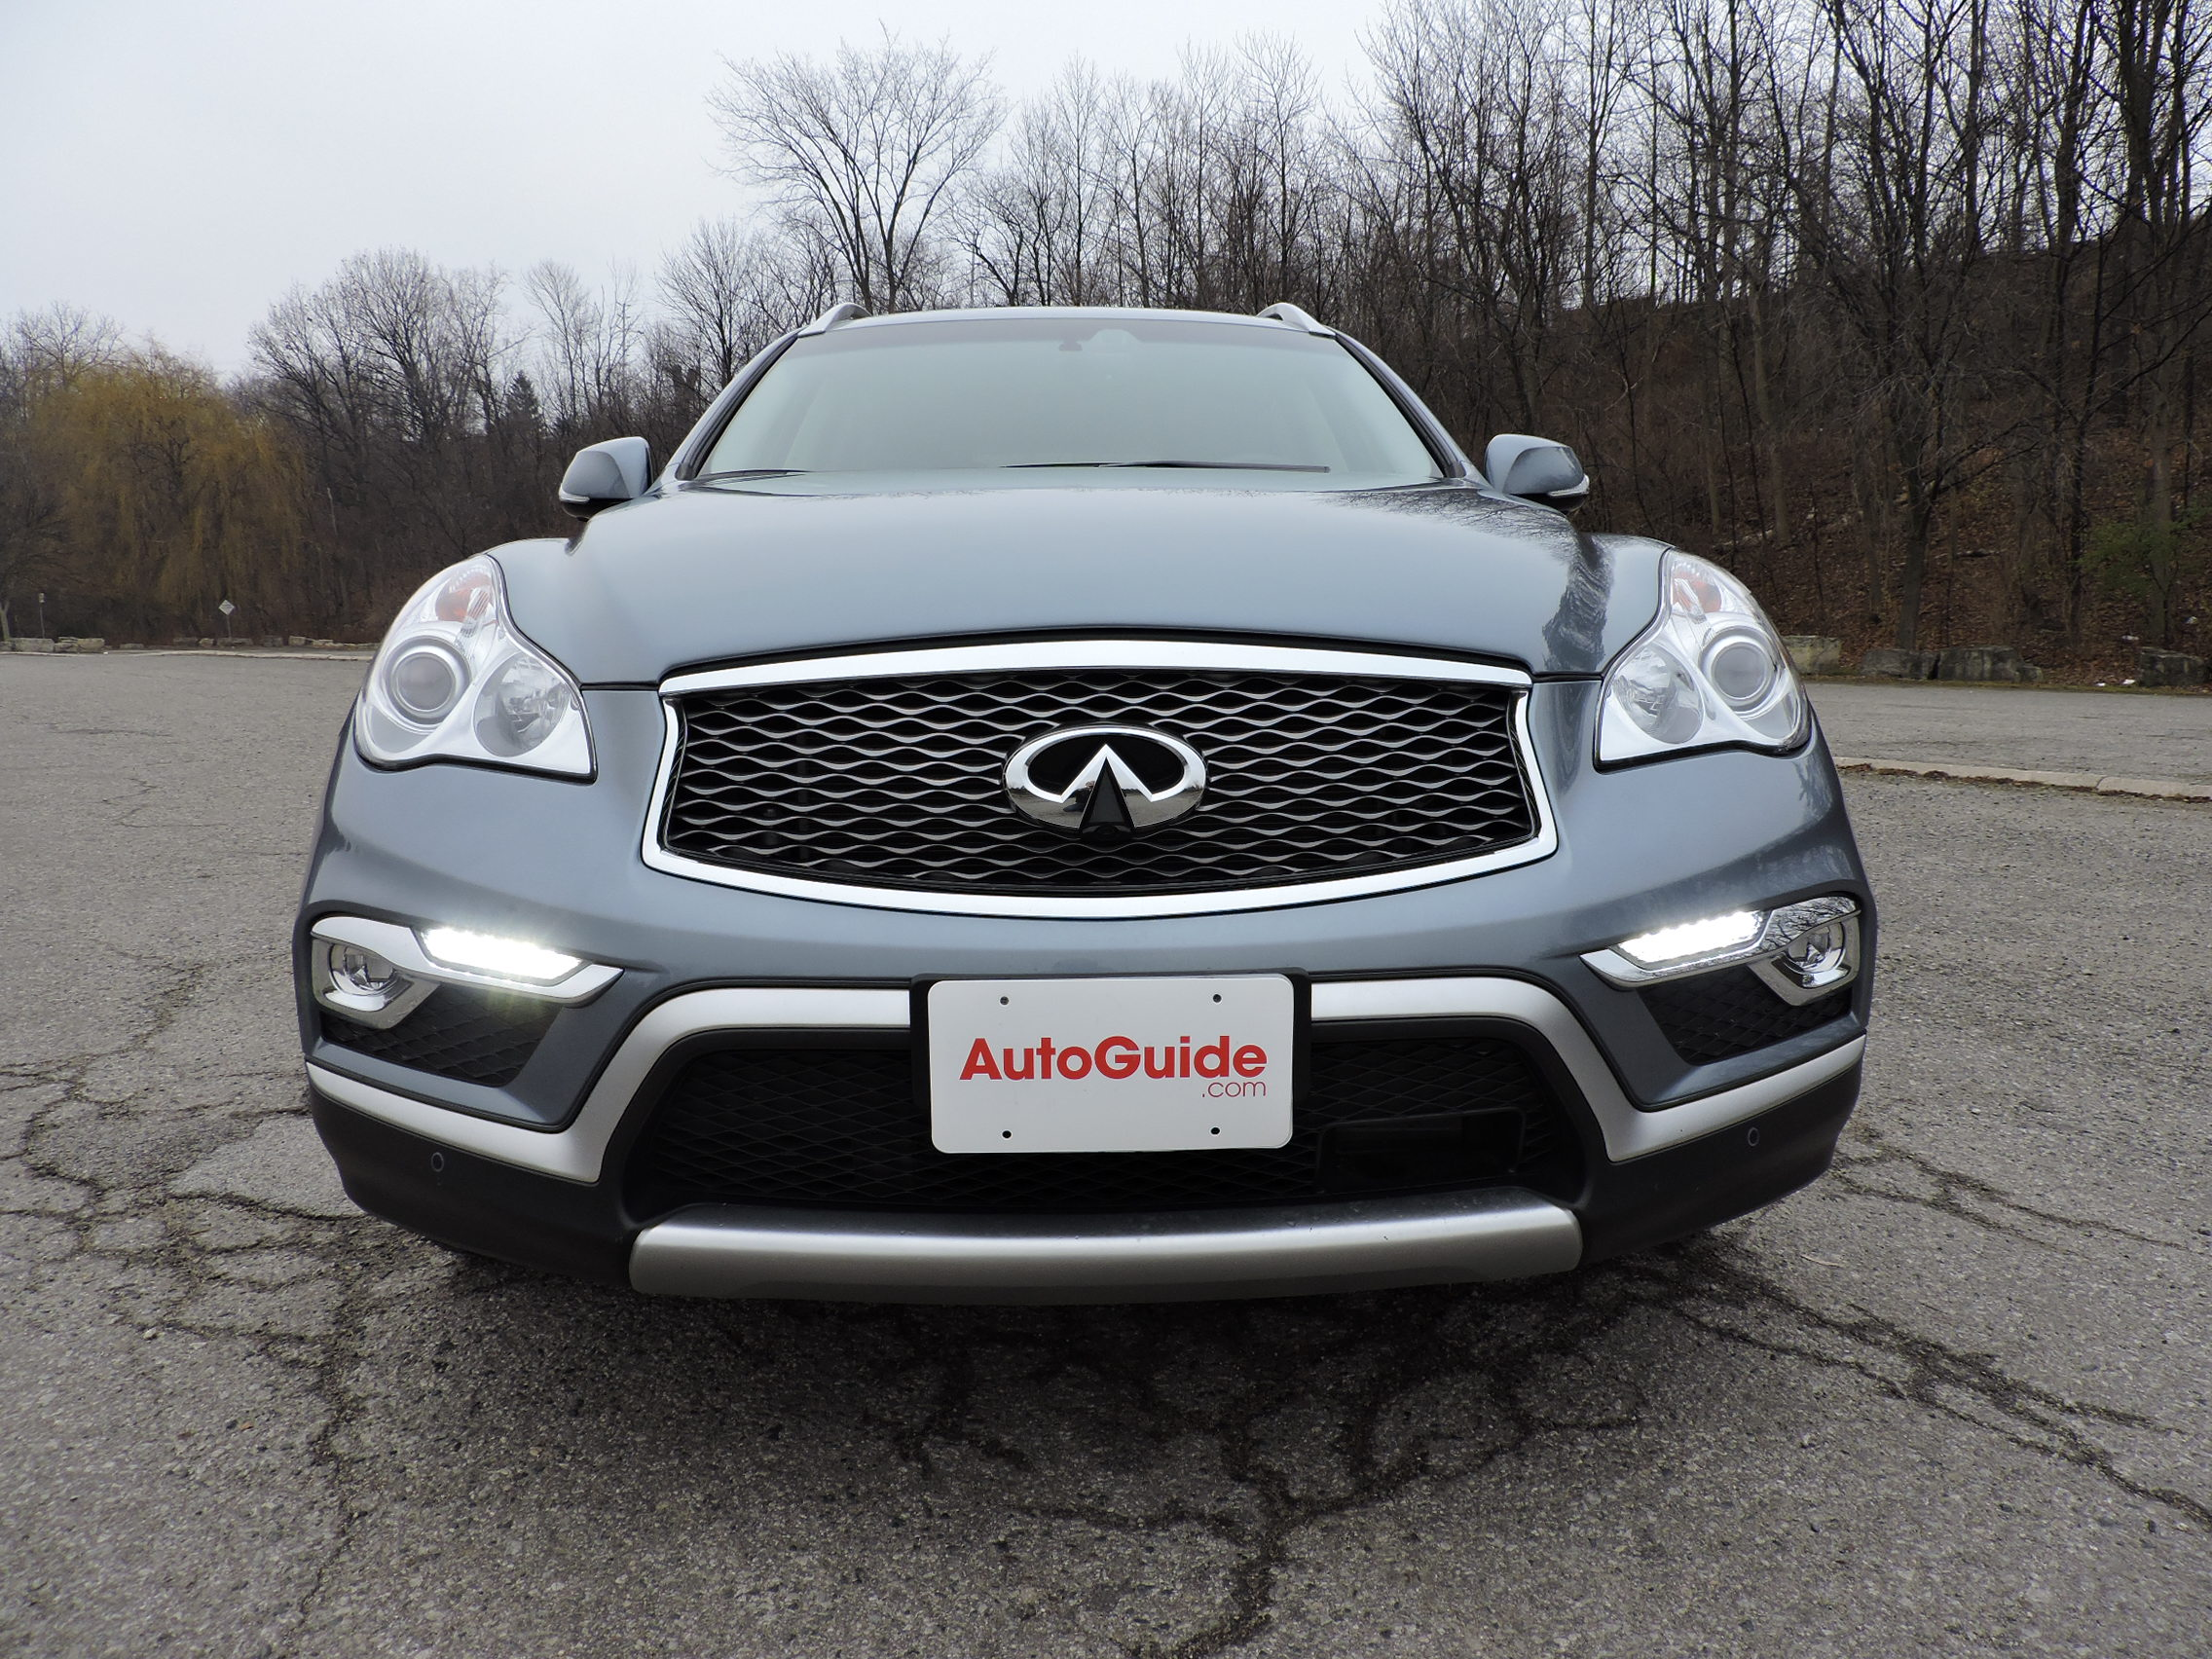 image infinity infiniti compact cars pinterest pin for result